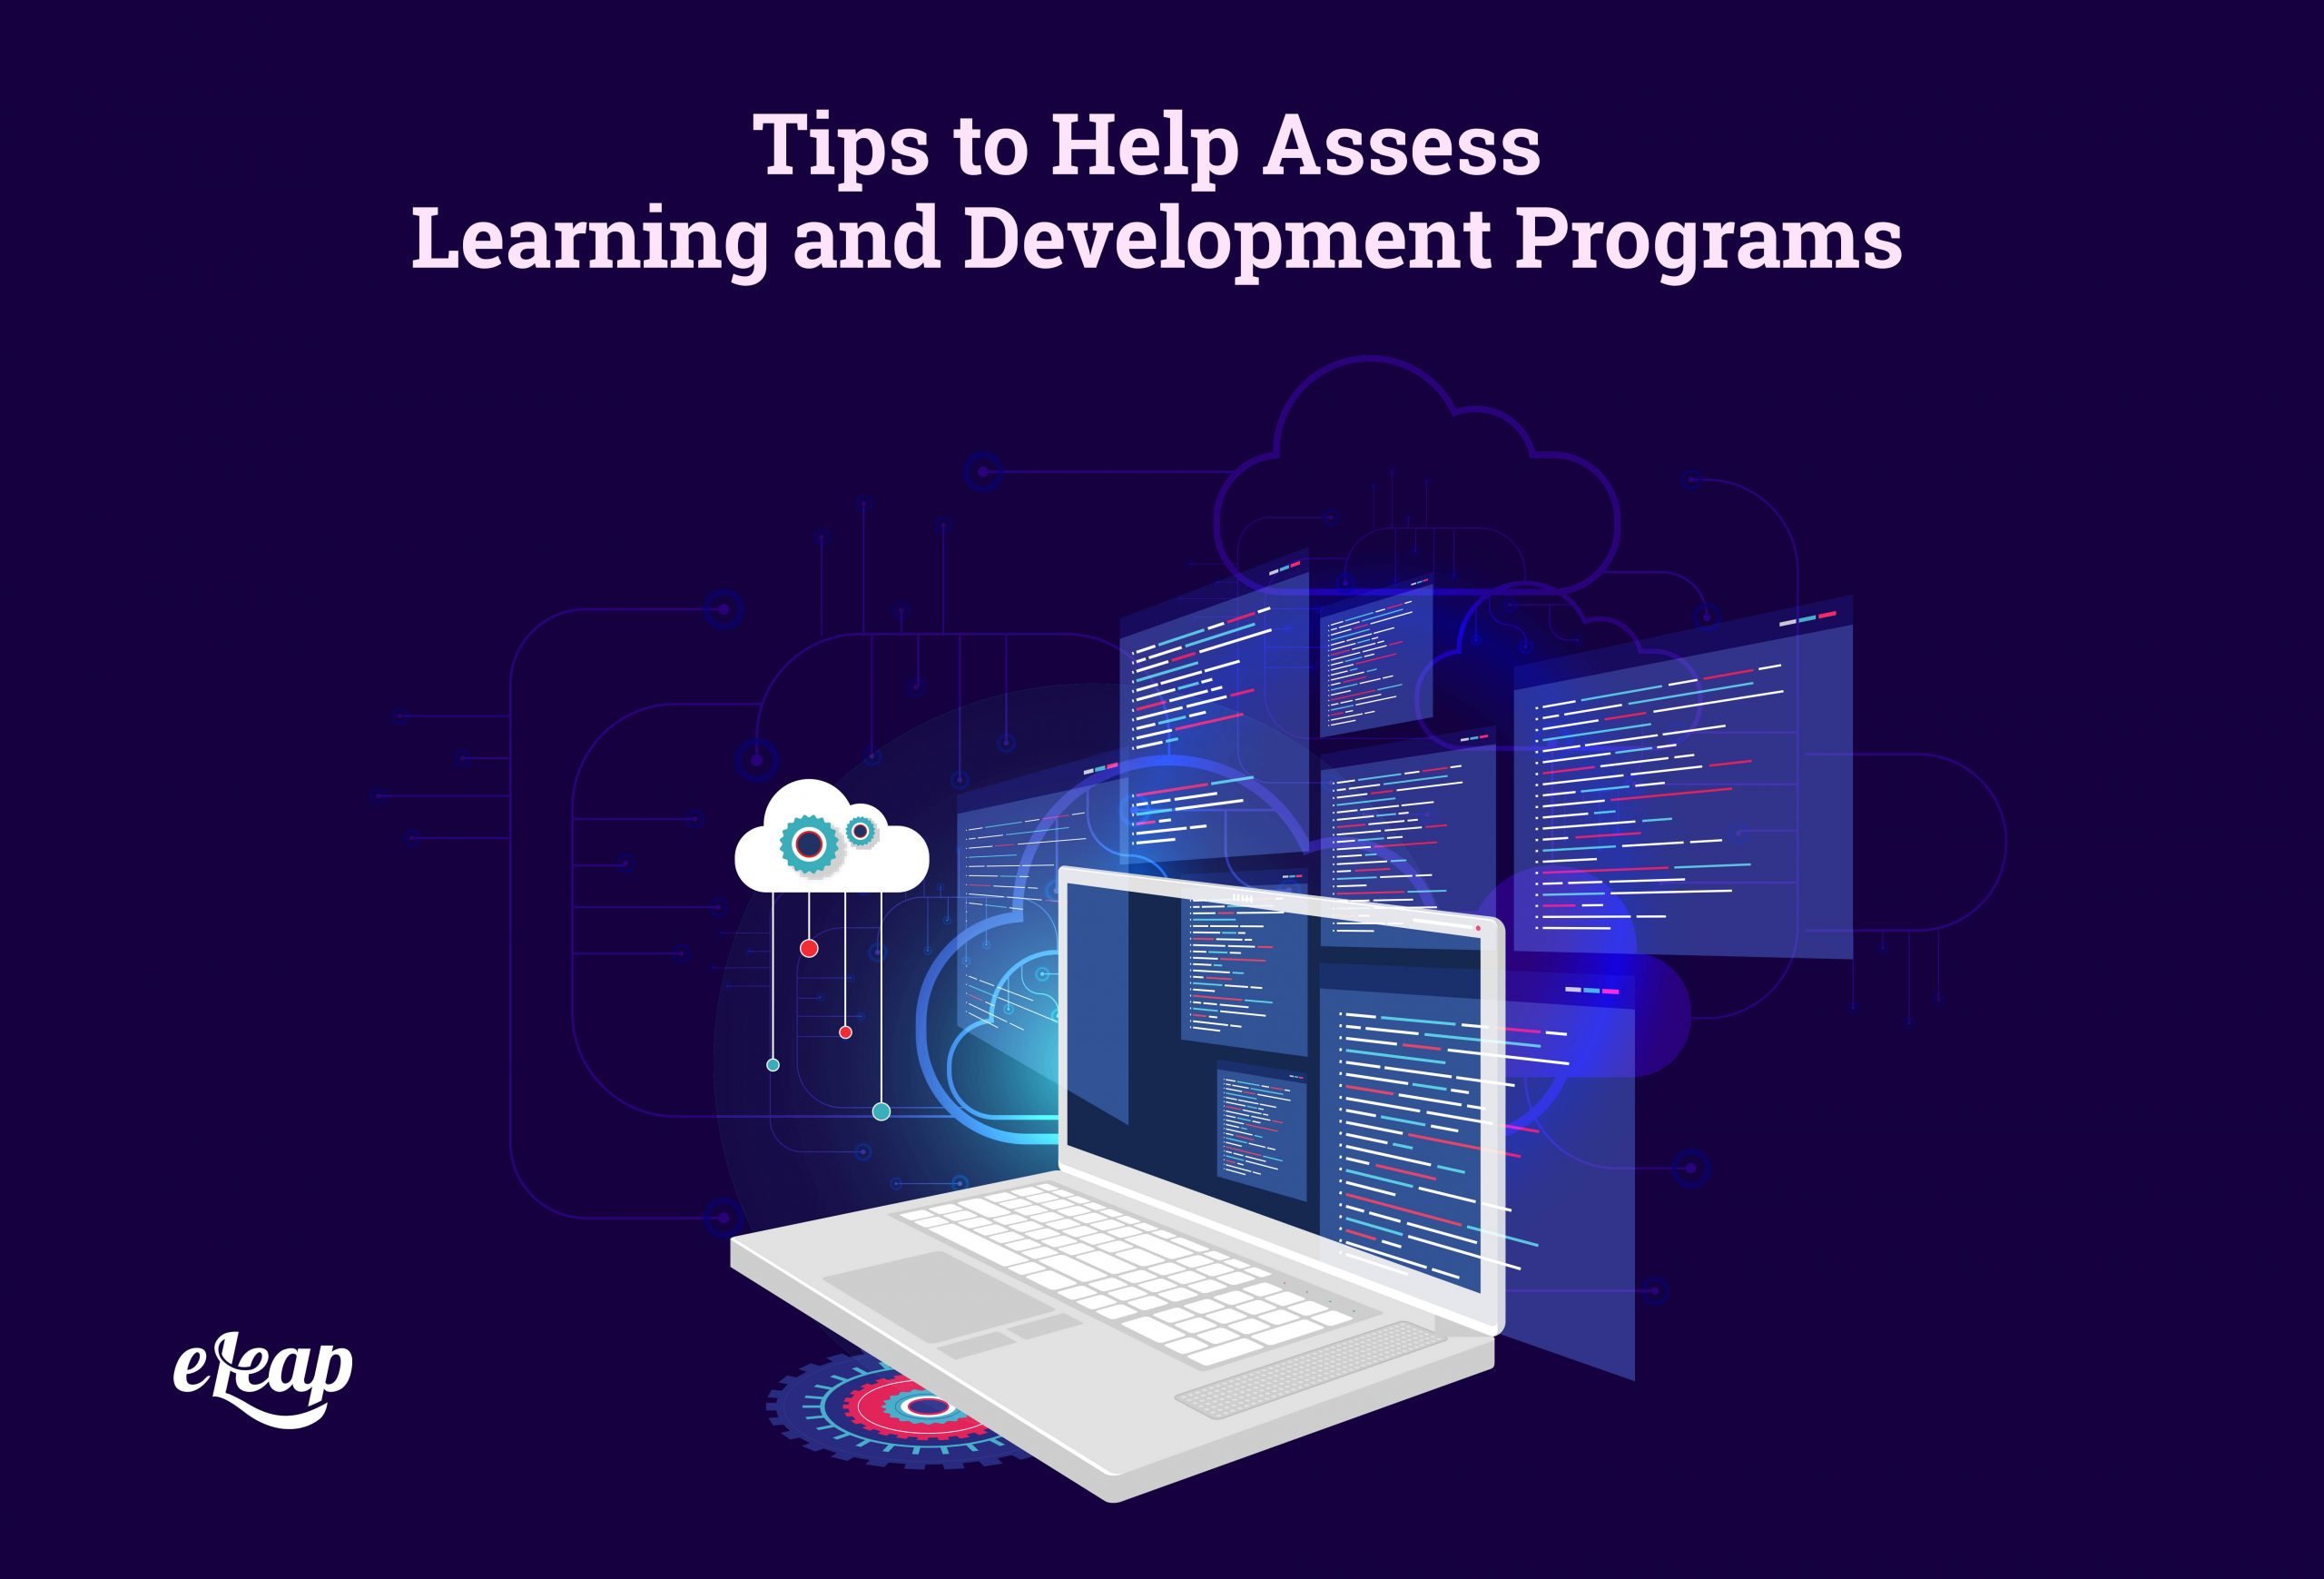 Tips to Help Assess Learning and Development Programs